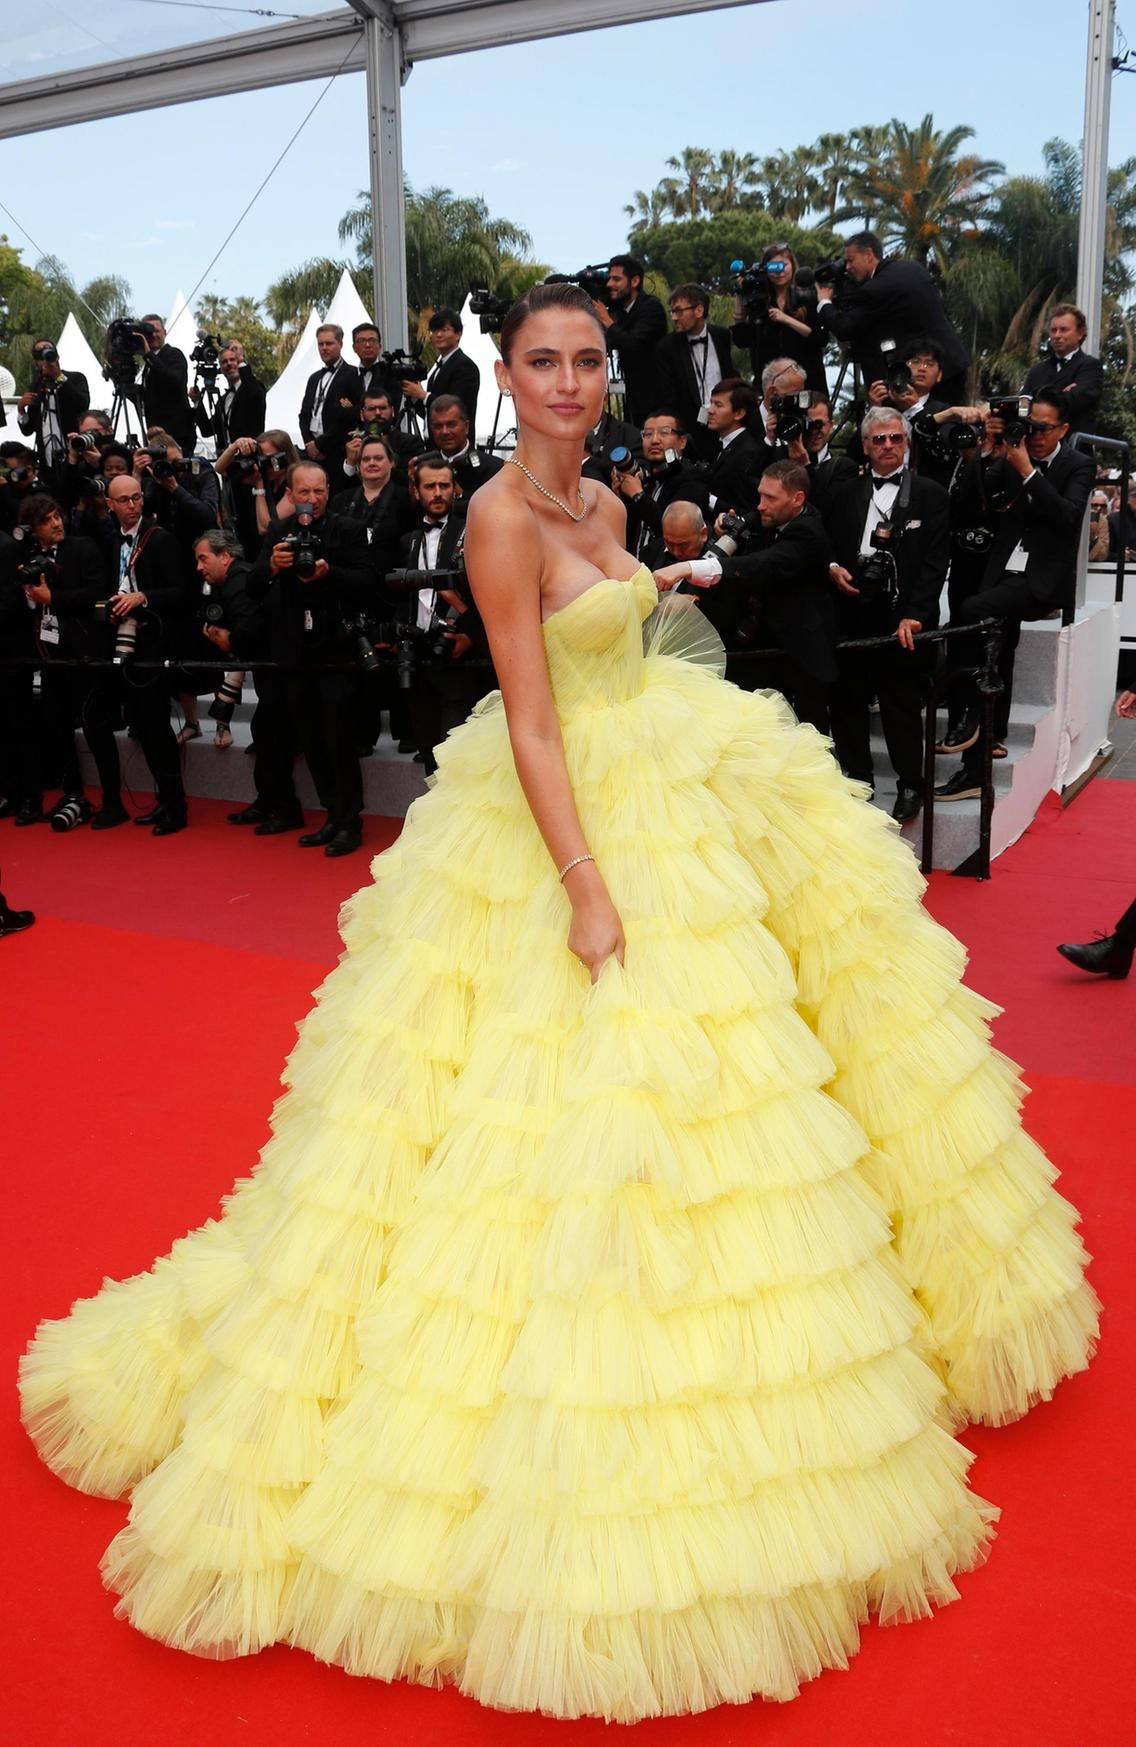 Who Has Been The Best Dressed At The Cannes Film Festival